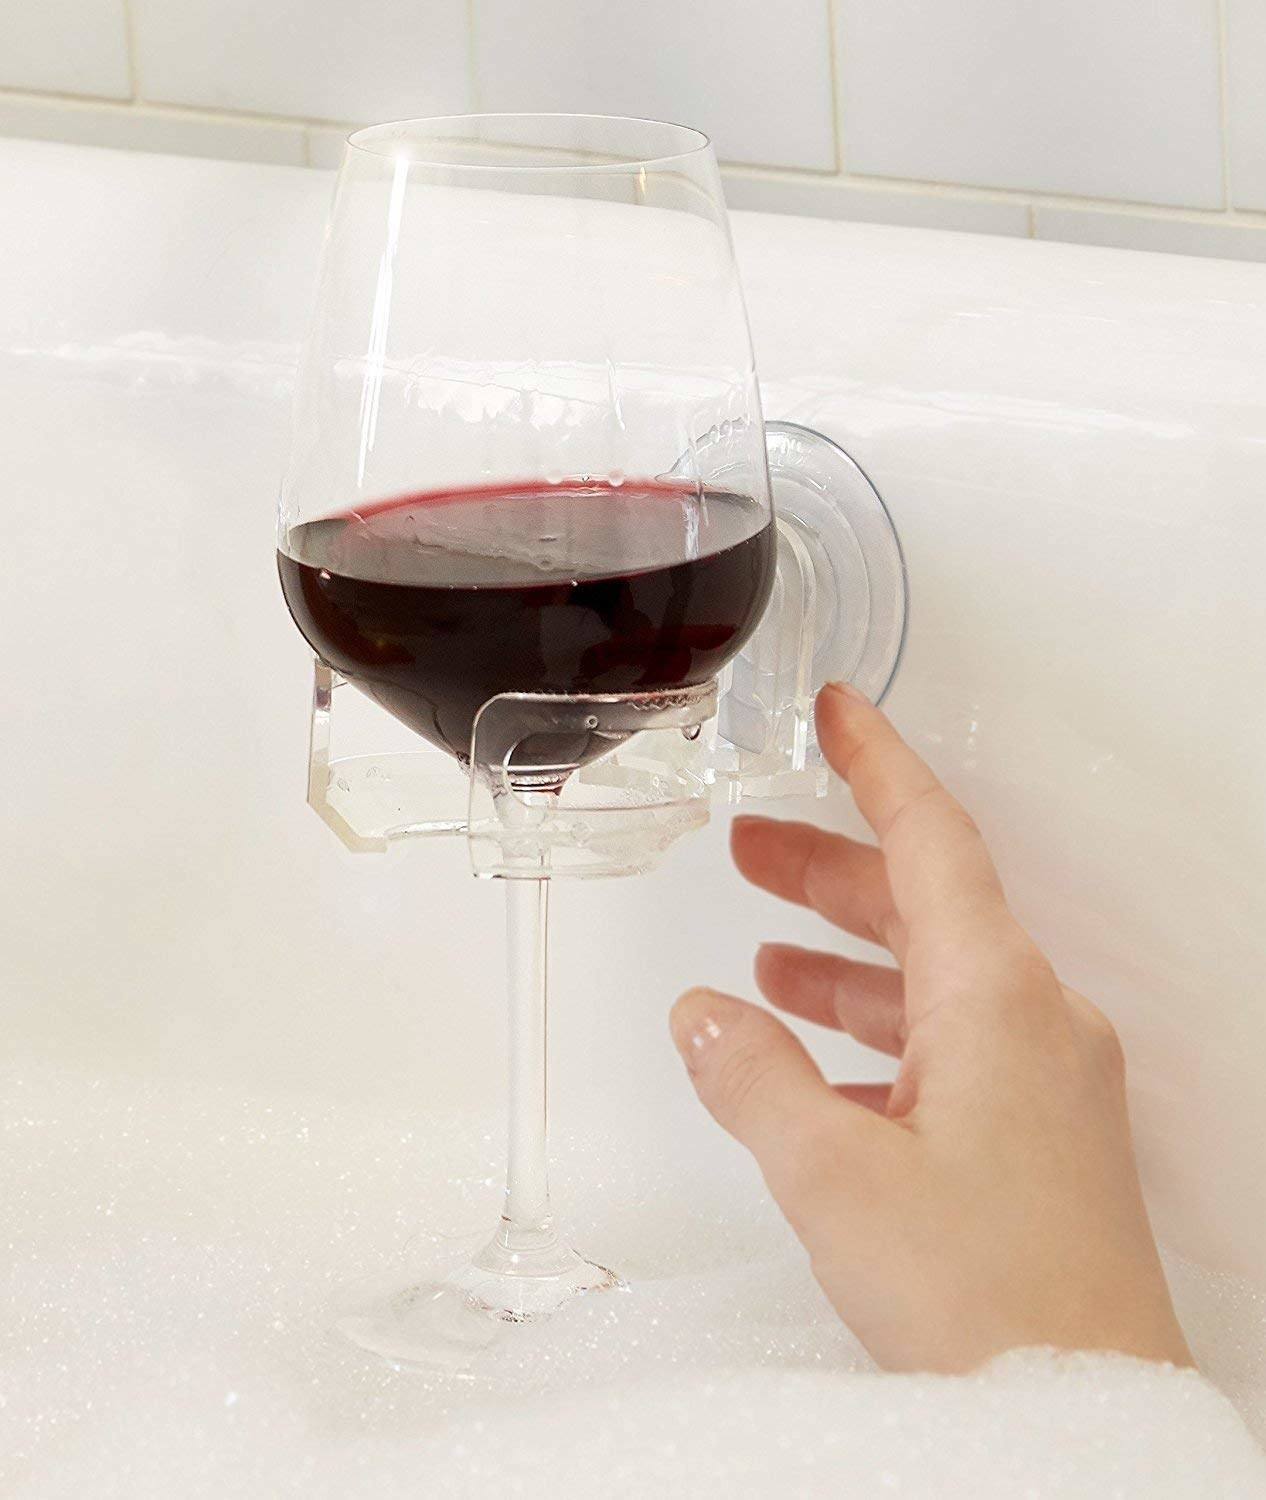 a hand reaching for the clear wine glass holder